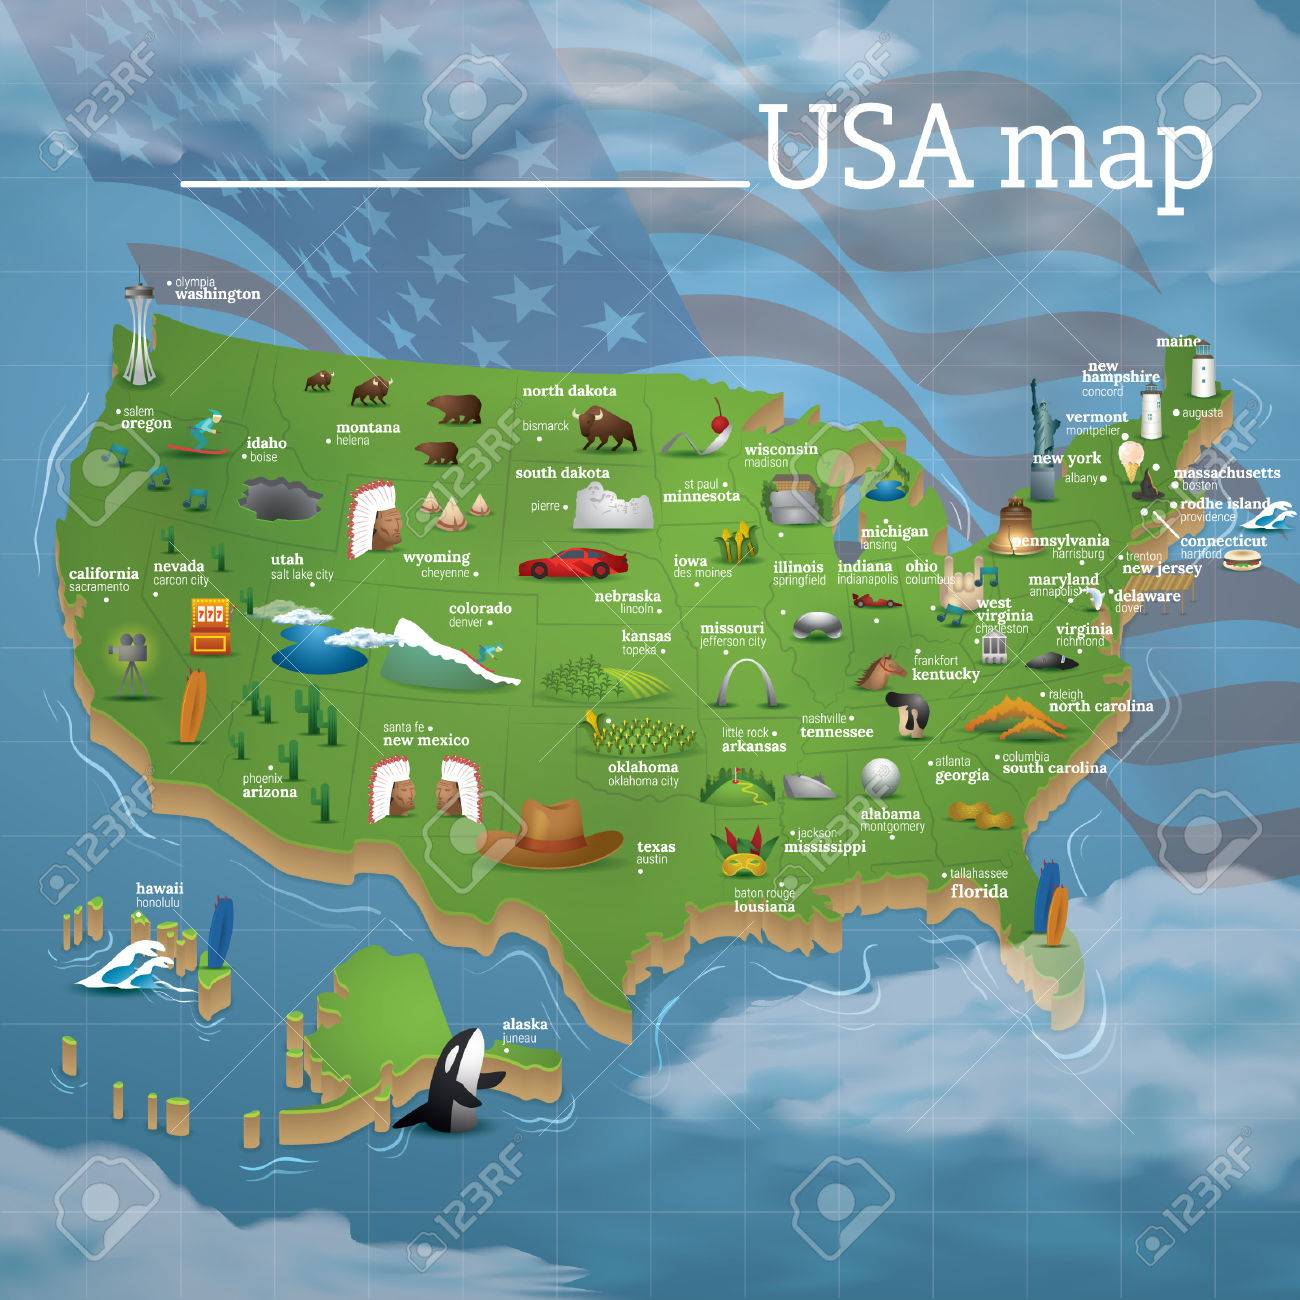 USA Map Famous Symbols Royalty Free Cliparts Vectors And Stock - Mt mckinley on us map